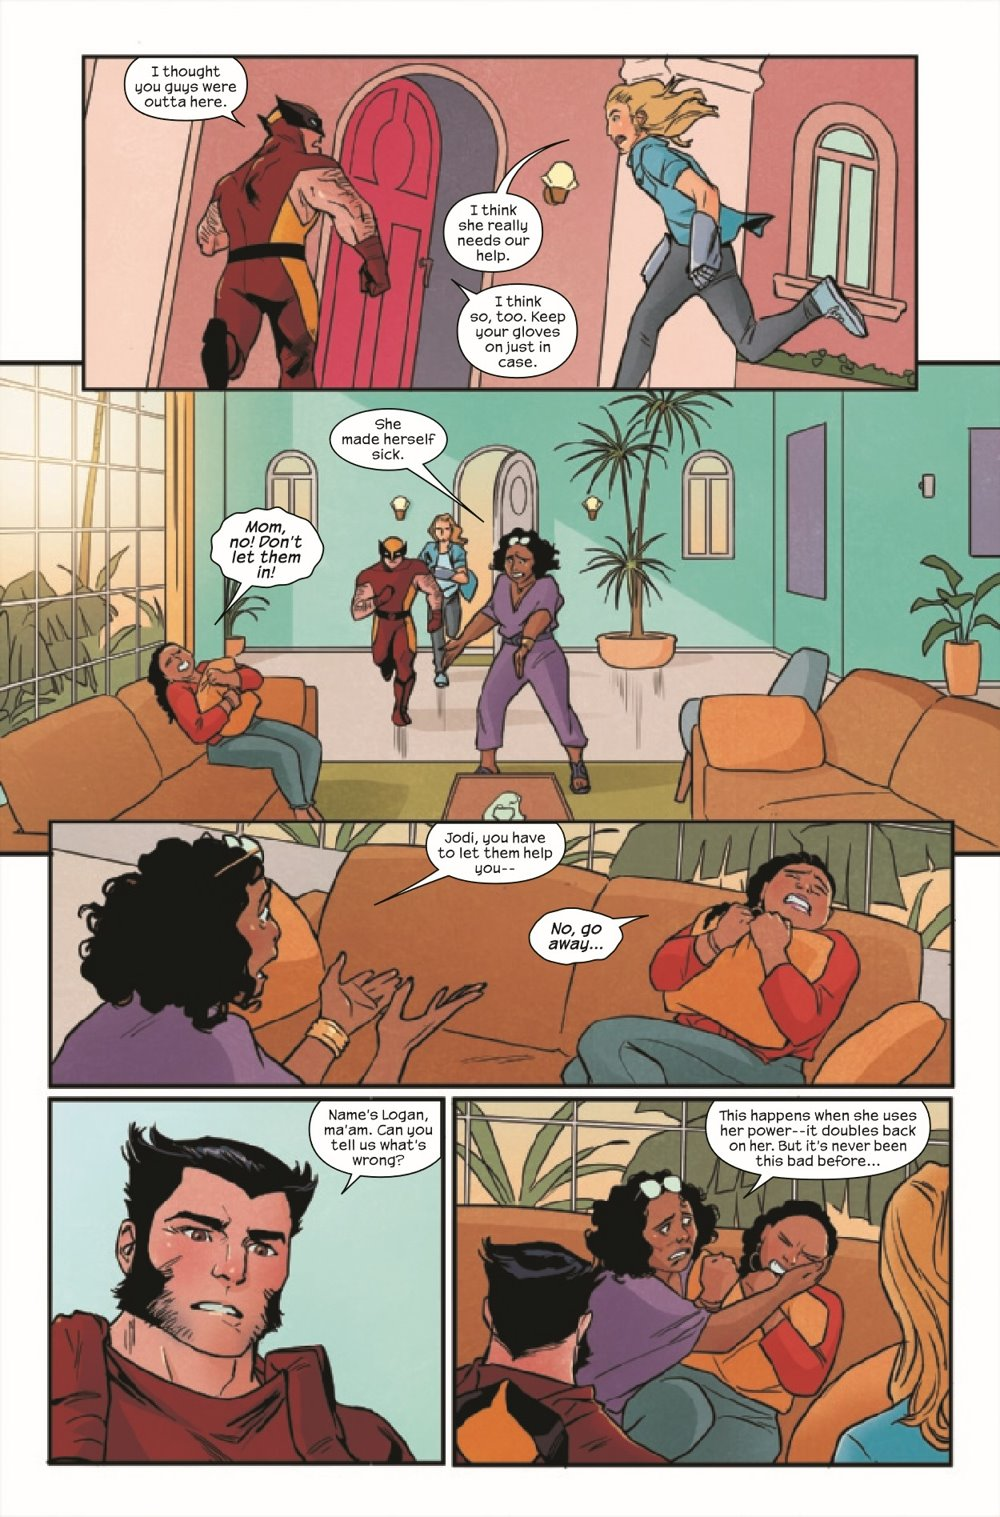 RUNAWY2017035_Preview-5 ComicList Previews: RUNAWAYS #35